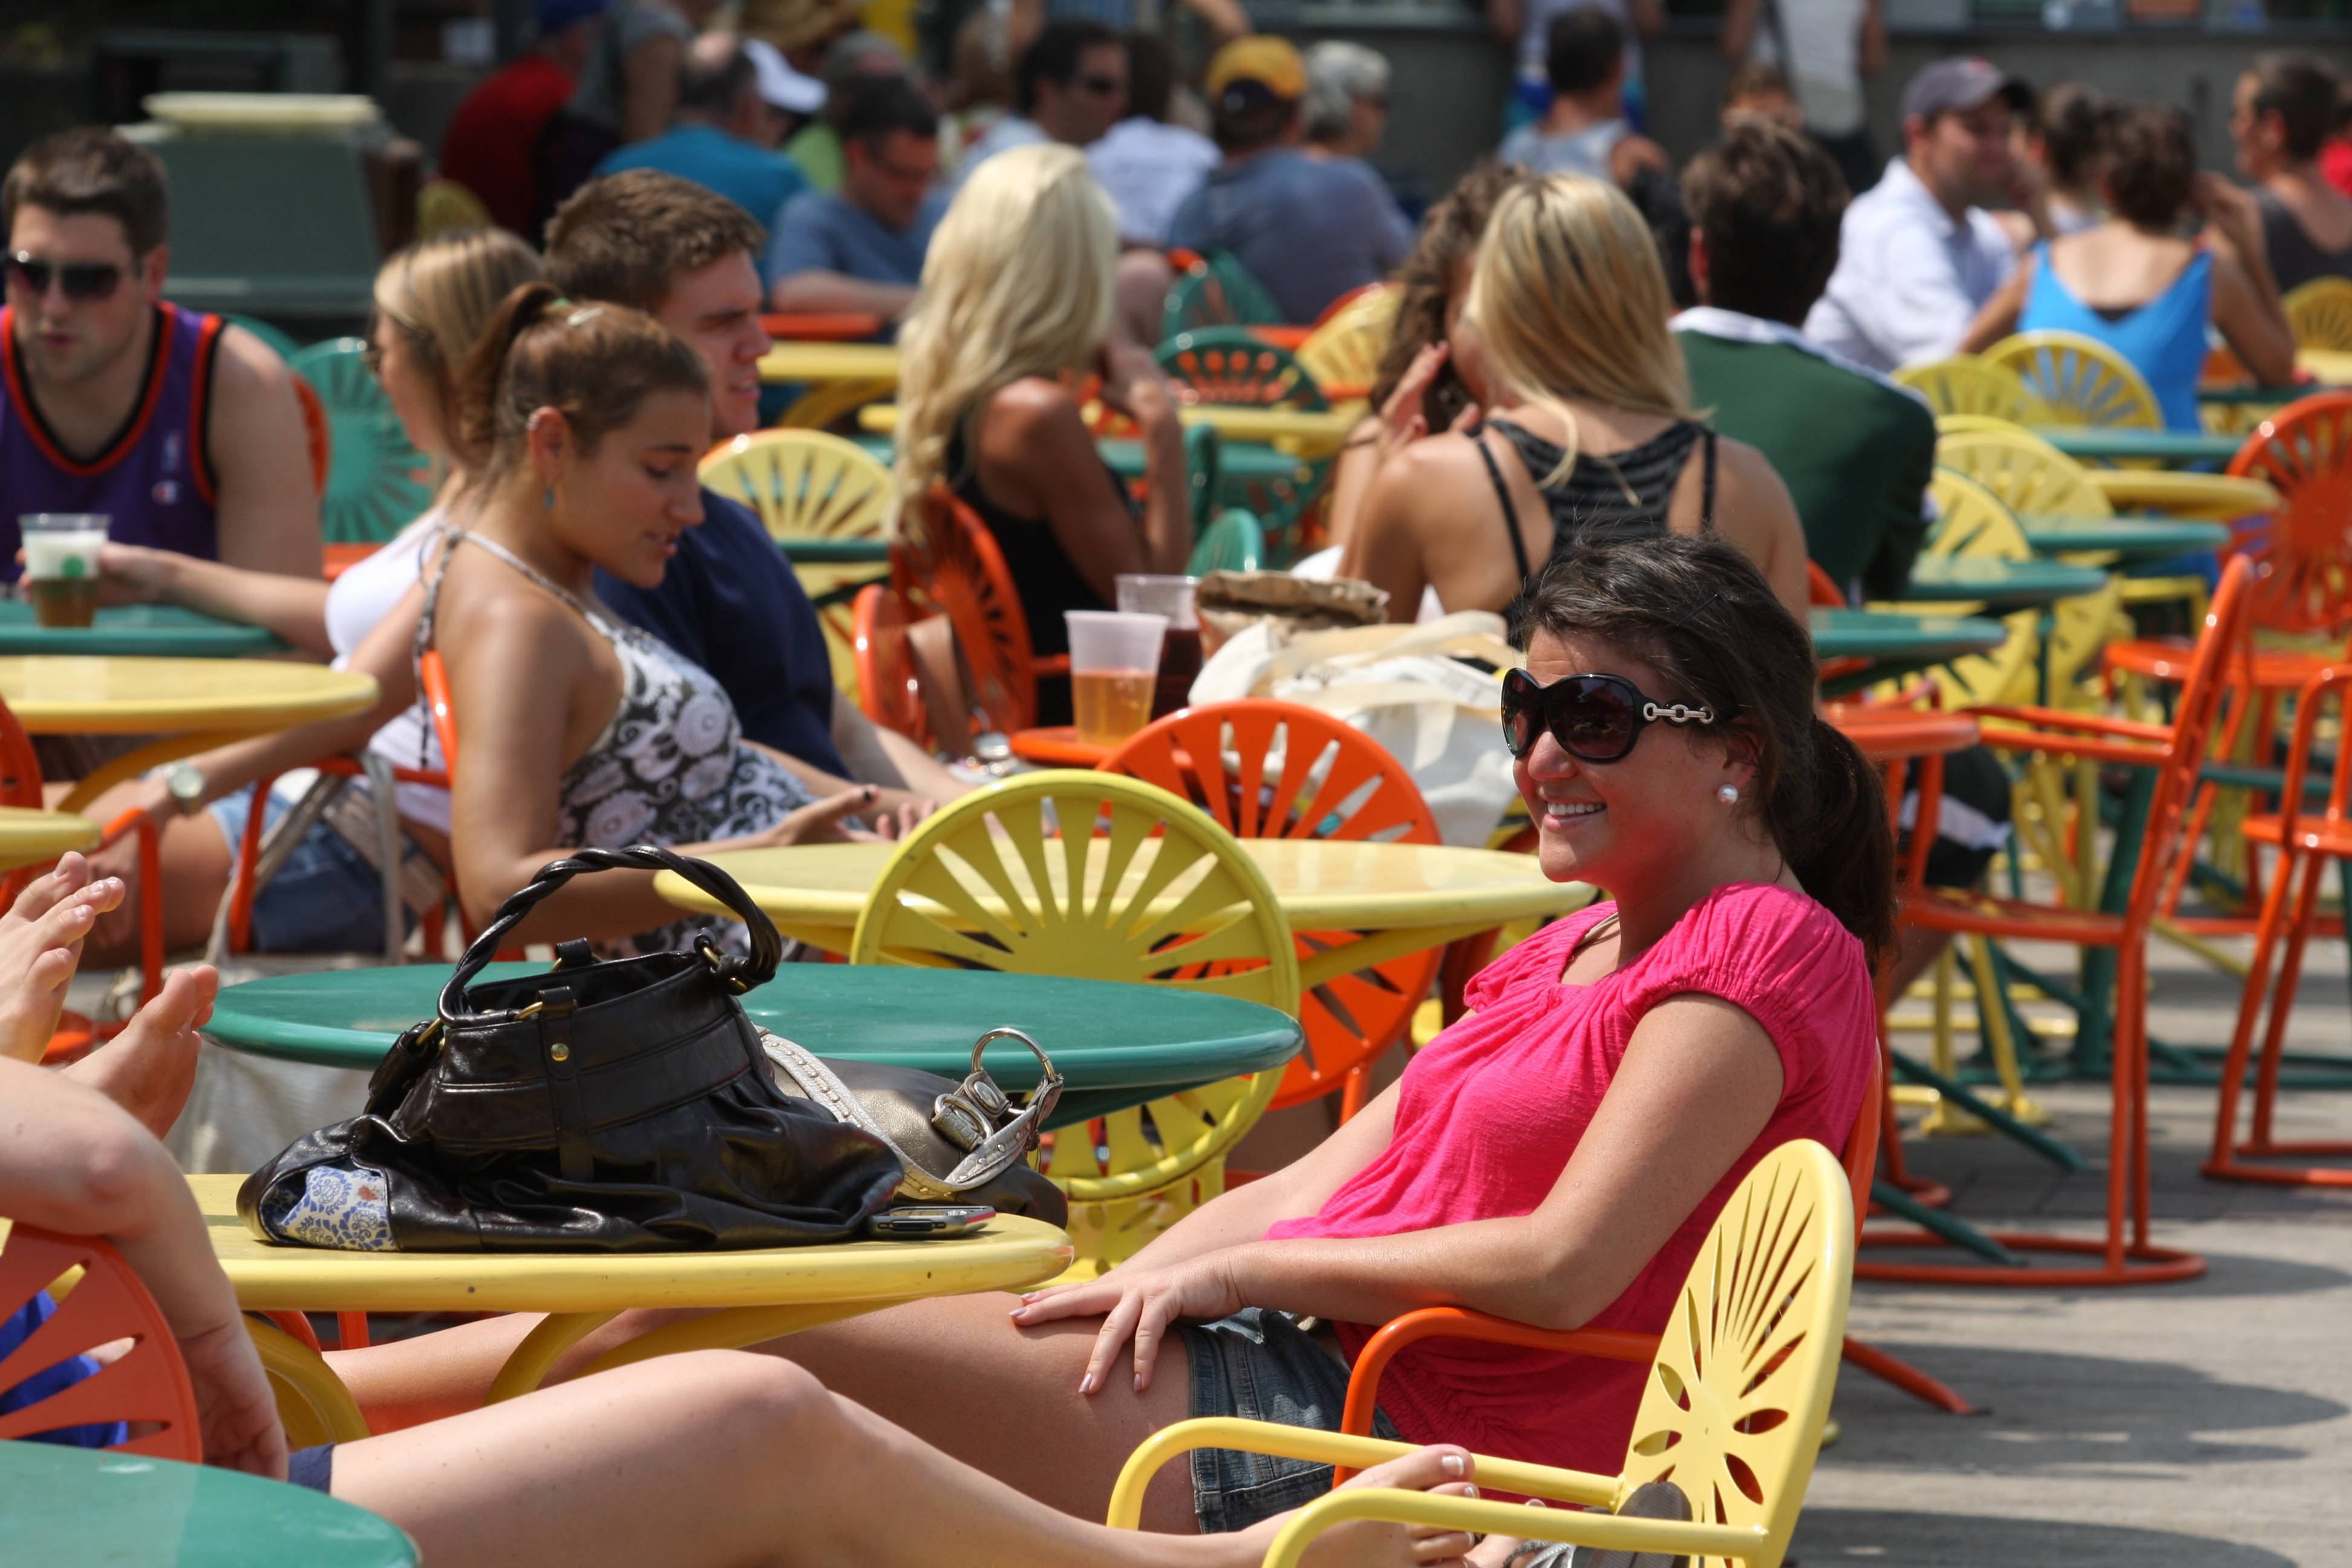 A crowd relaxes at Memorial Union Terrace in Madison, Wis. The terrace on State Street by the University of Wisconsin campus is a popular destination, almost like the city's back porch, with metal chairs for relaxing, hanging out and looking at Lake Mendota.